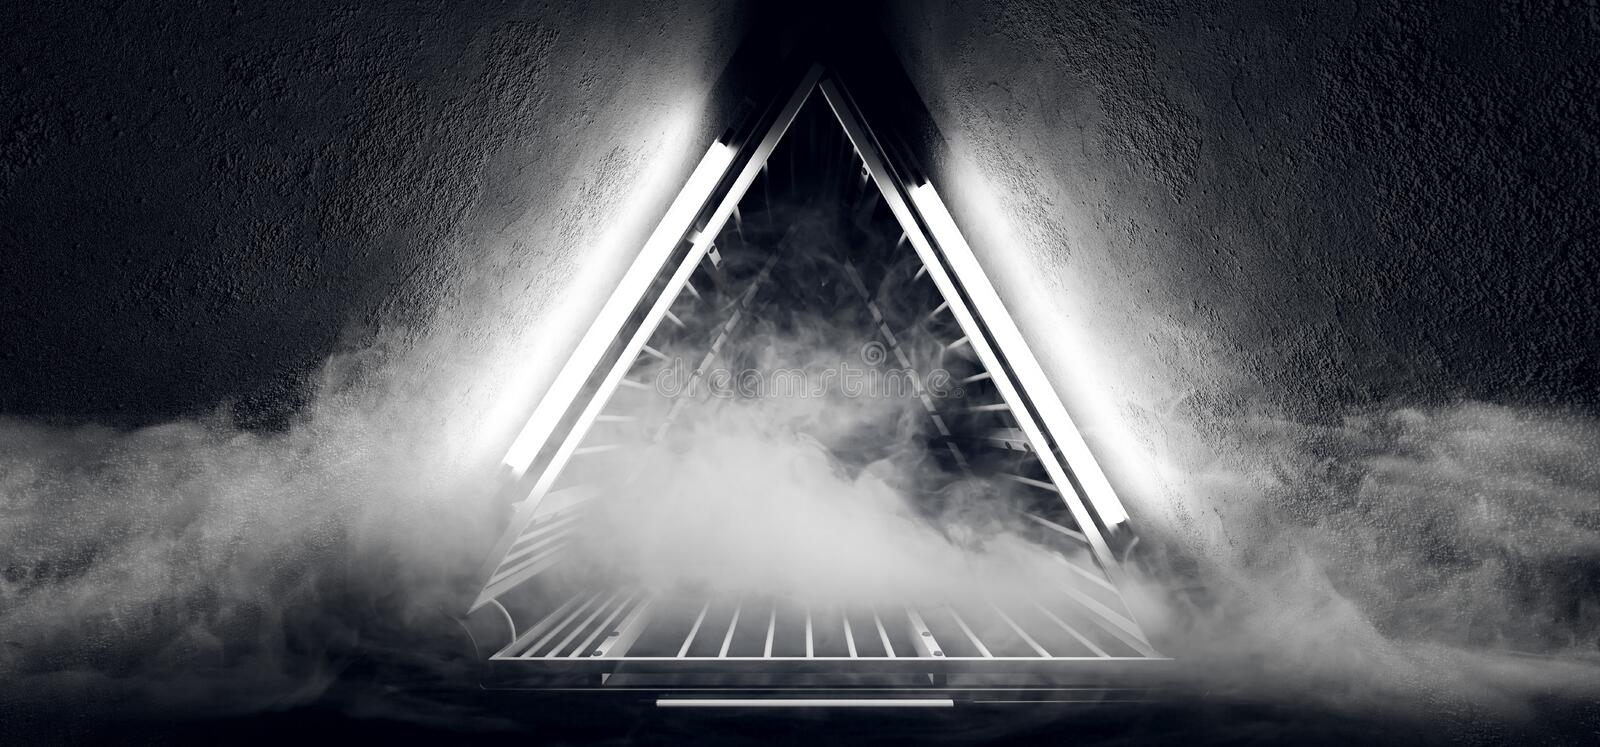 Sci Fi Neon Glowing Dance Lights Triangle Shaped Metal Construction Structure In Dark Smoke Fog Grunge Concrete Tunnel Corridor. Empty Space. 3D Rendering royalty free illustration